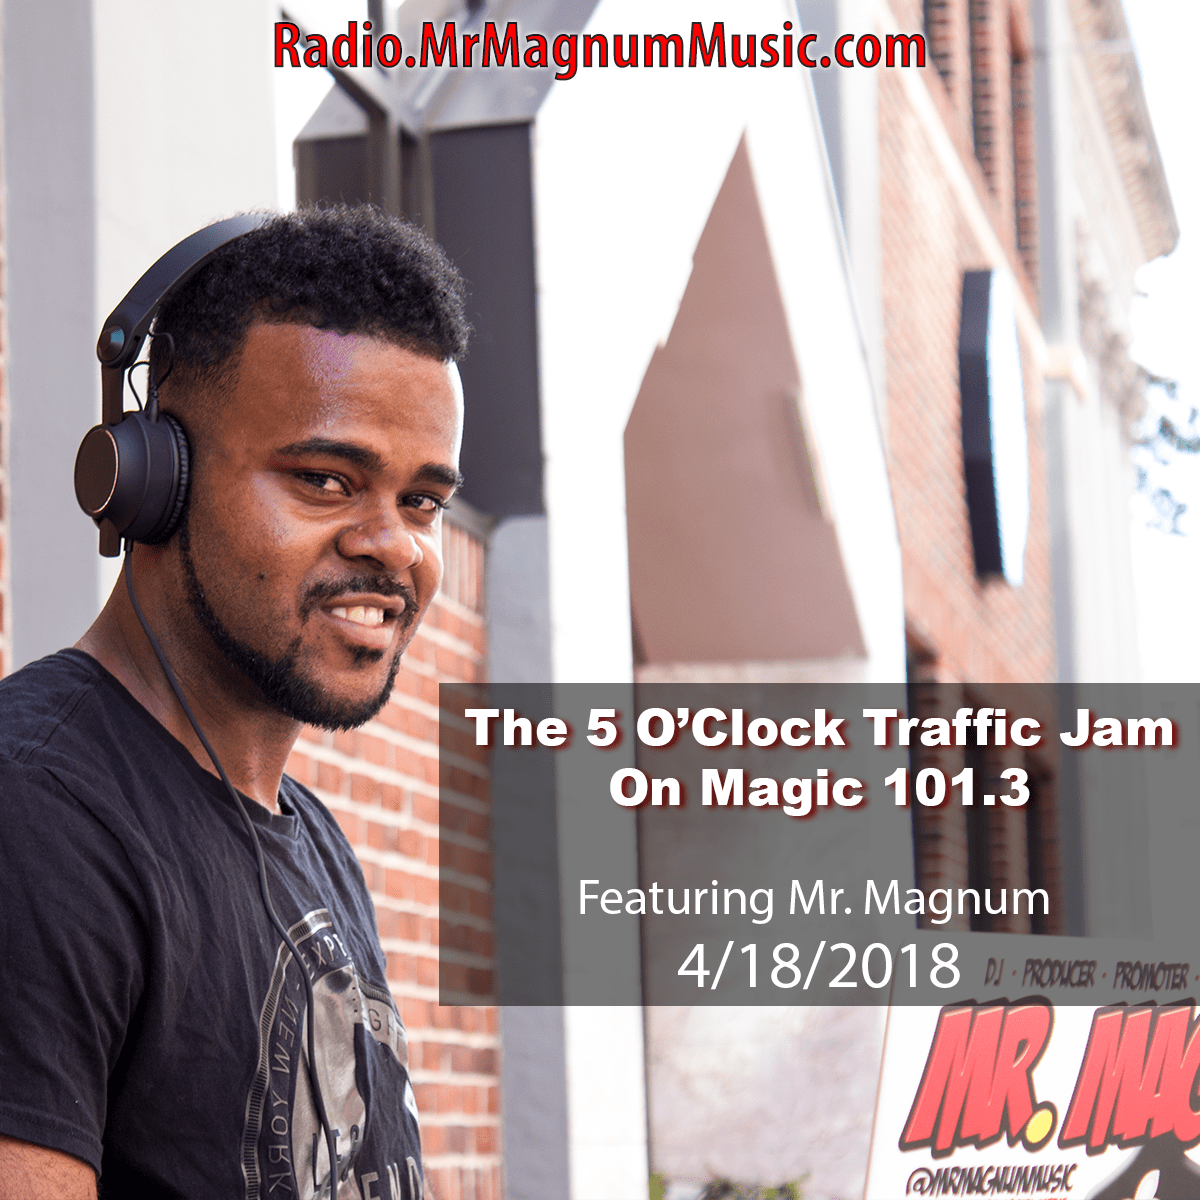 5 O'Clock Traffic Jam 4-18-2018 on Magic 101.3